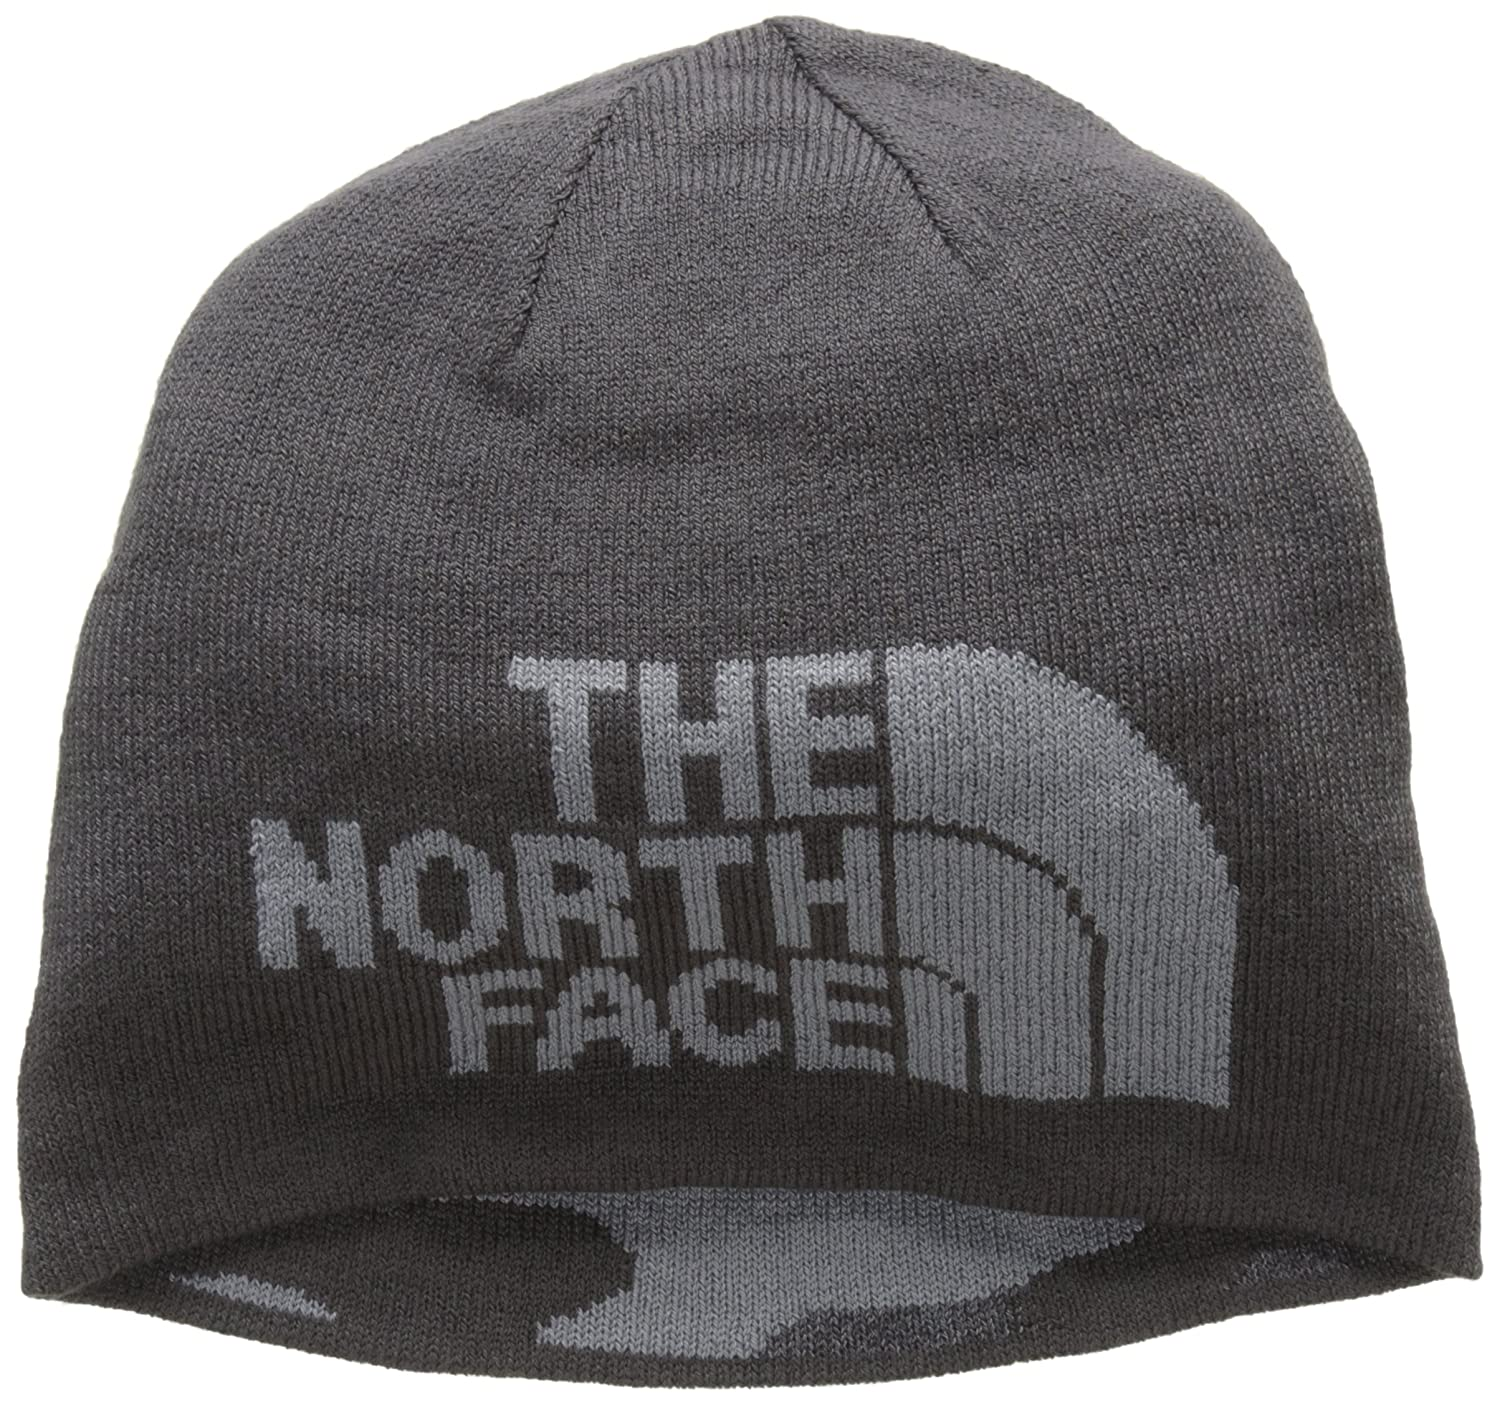 066bb7f73 THE NORTH FACE Men's Highline Beanie